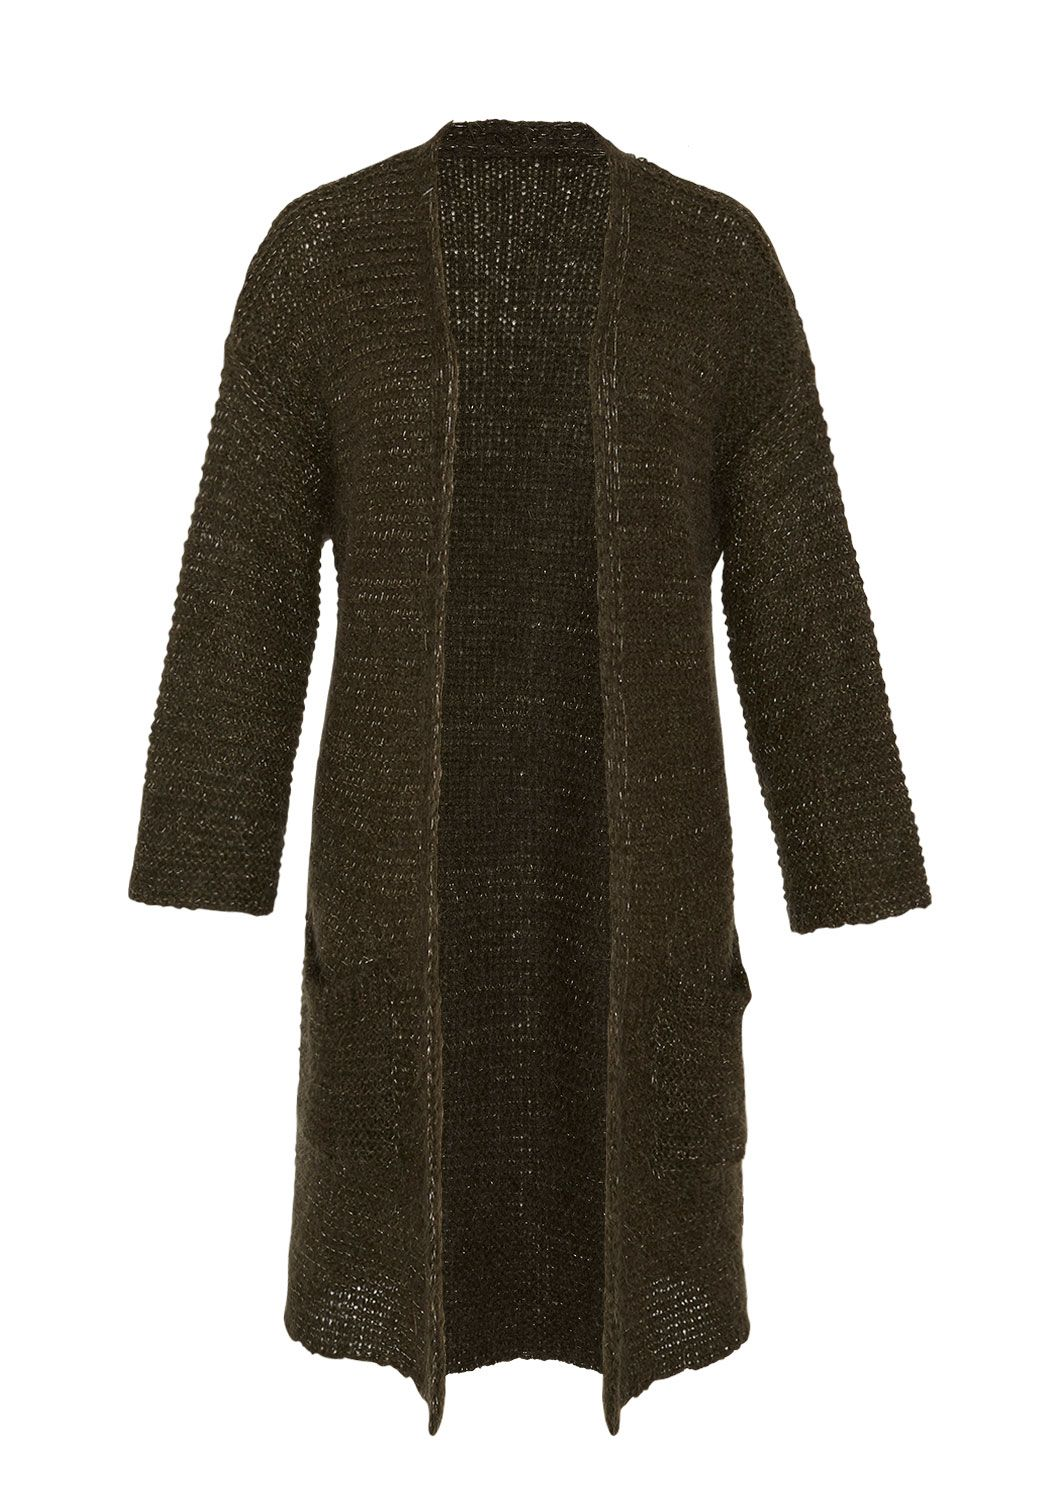 Hallhuber Hallhuber Long Cardigan With Lurex Elements, Green